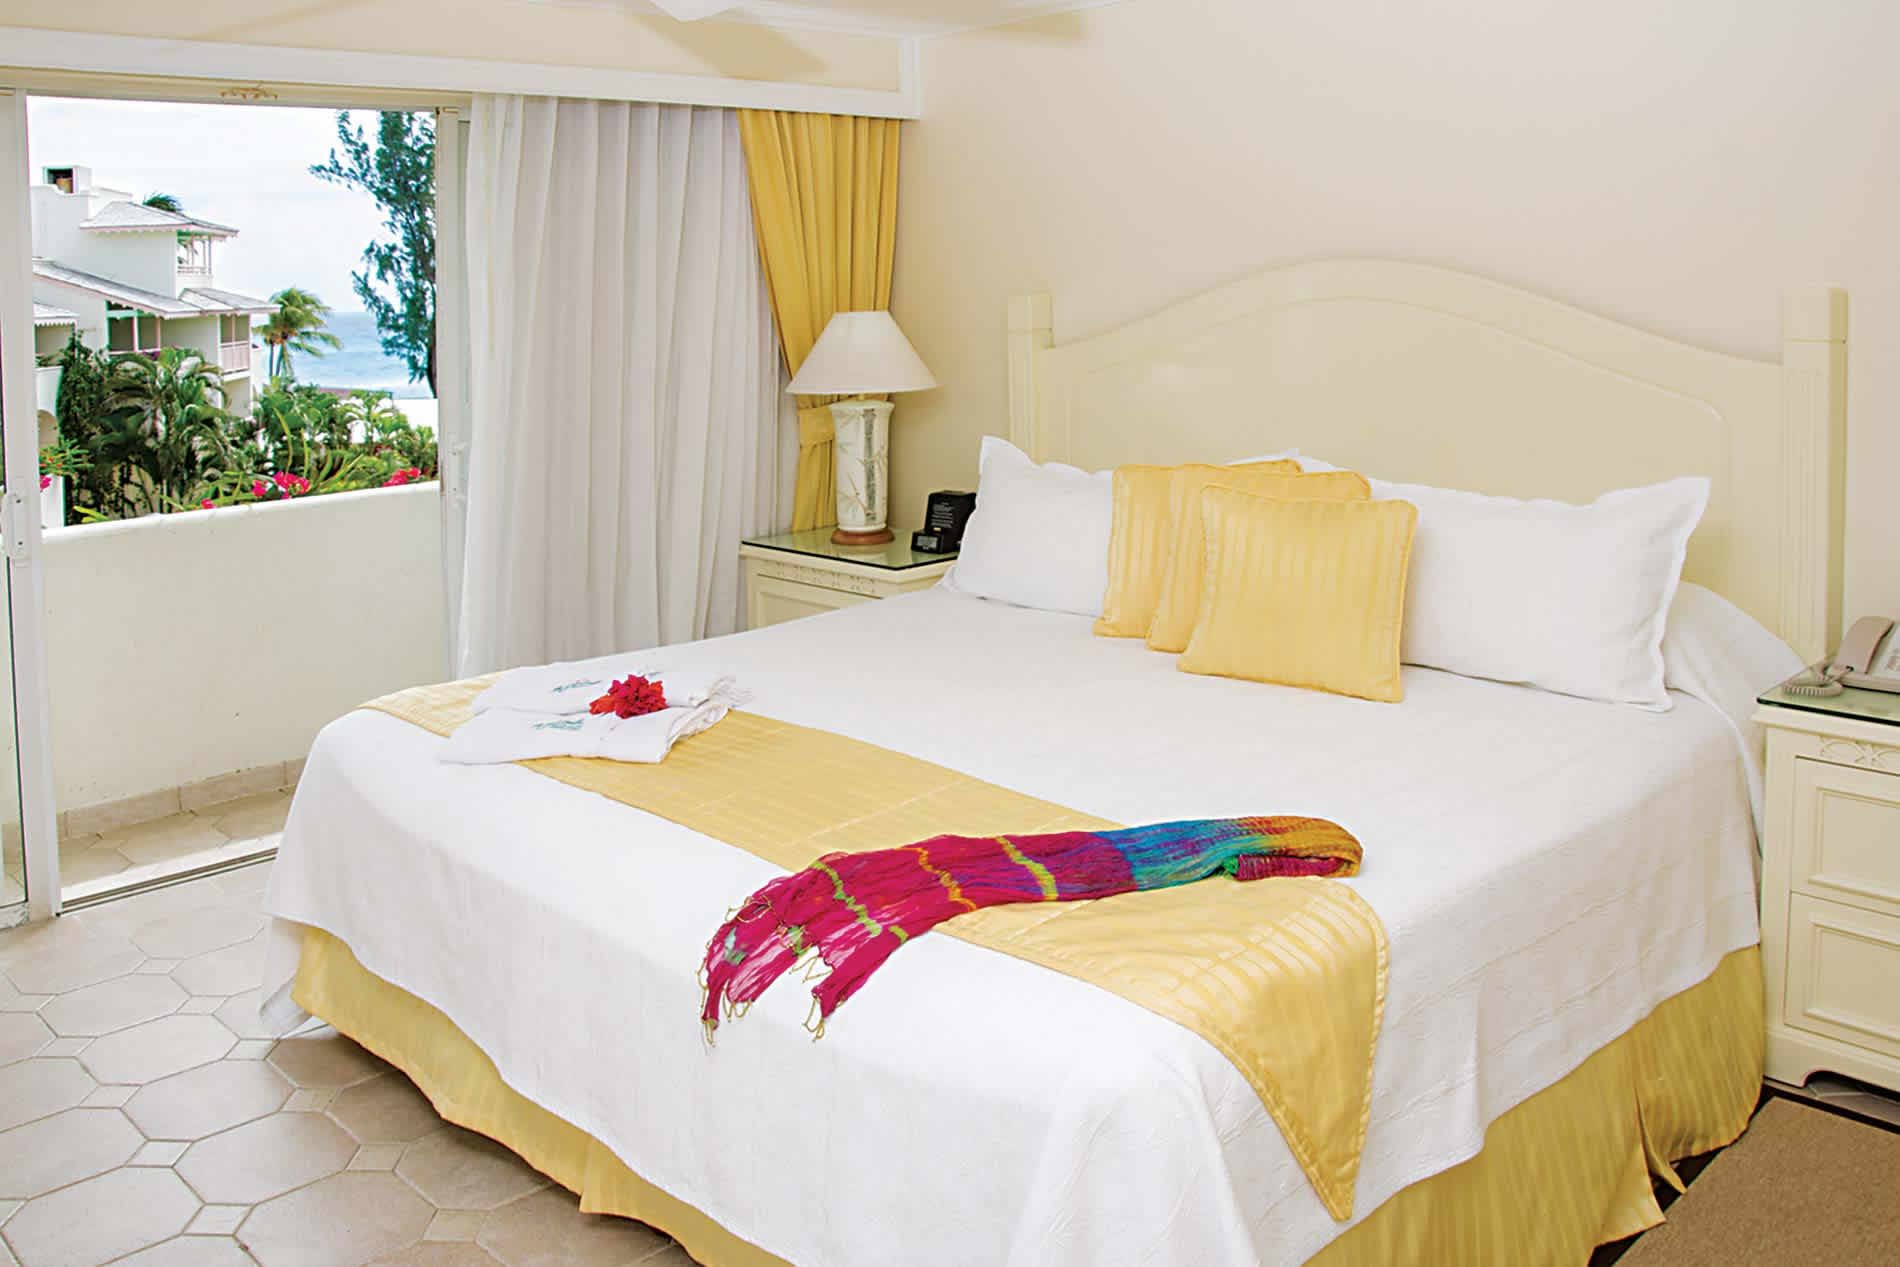 Apartment Bougainvillea A2 Deluxe in Bougainvillea Beach Resort - sleeps 4 people